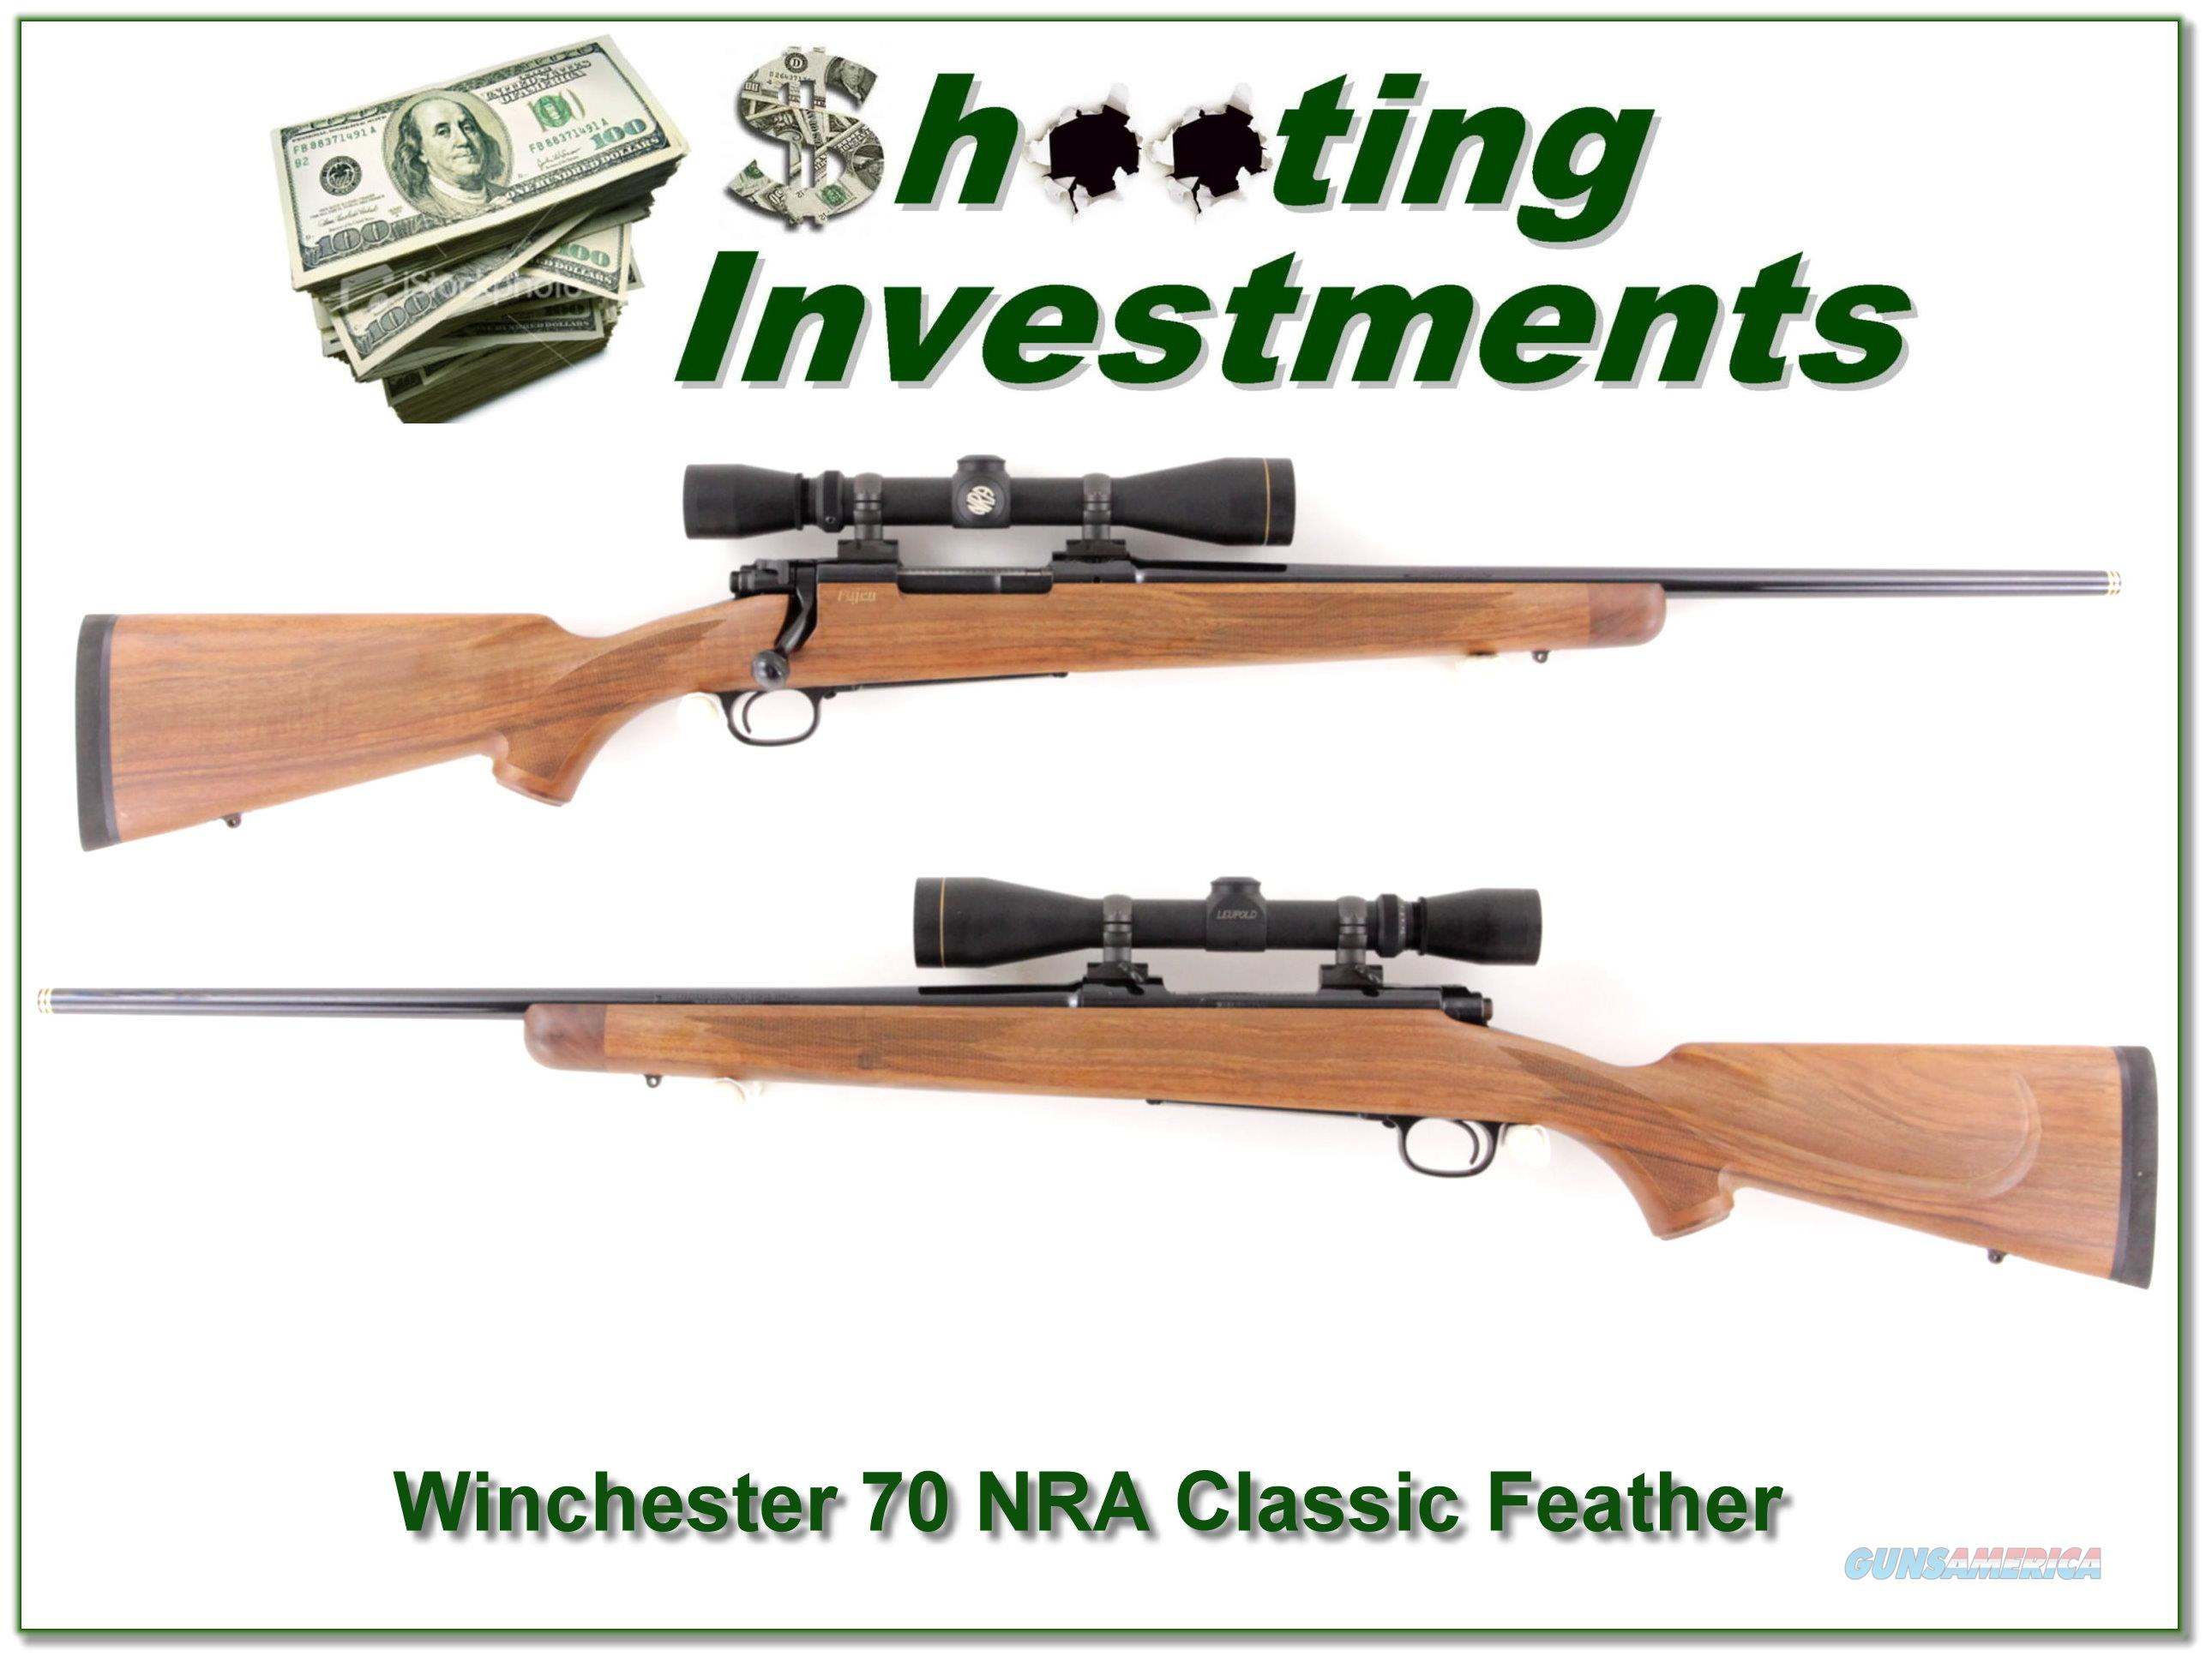 Winchester 70 NRA Classic Feather 30-06 NRA Leupold NEW!  Guns > Rifles > Winchester Rifles - Modern Bolt/Auto/Single > Model 70 > Post-64